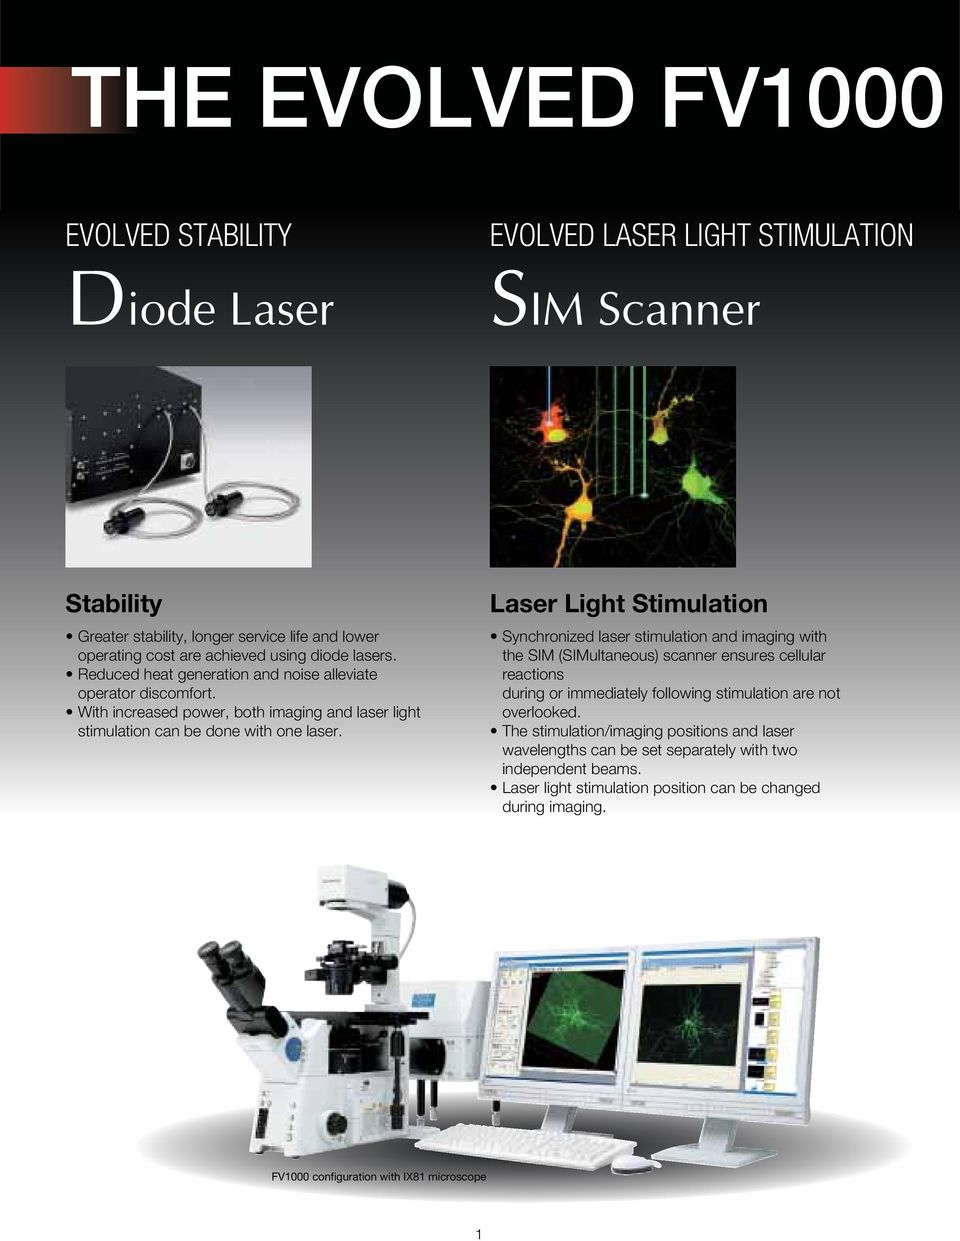 Laser Light Stimulation Synchronized laser stimulation and imaging with the SIM (SIMultaneous) scanner ensures cellular reactions during or immediately following stimulation are not